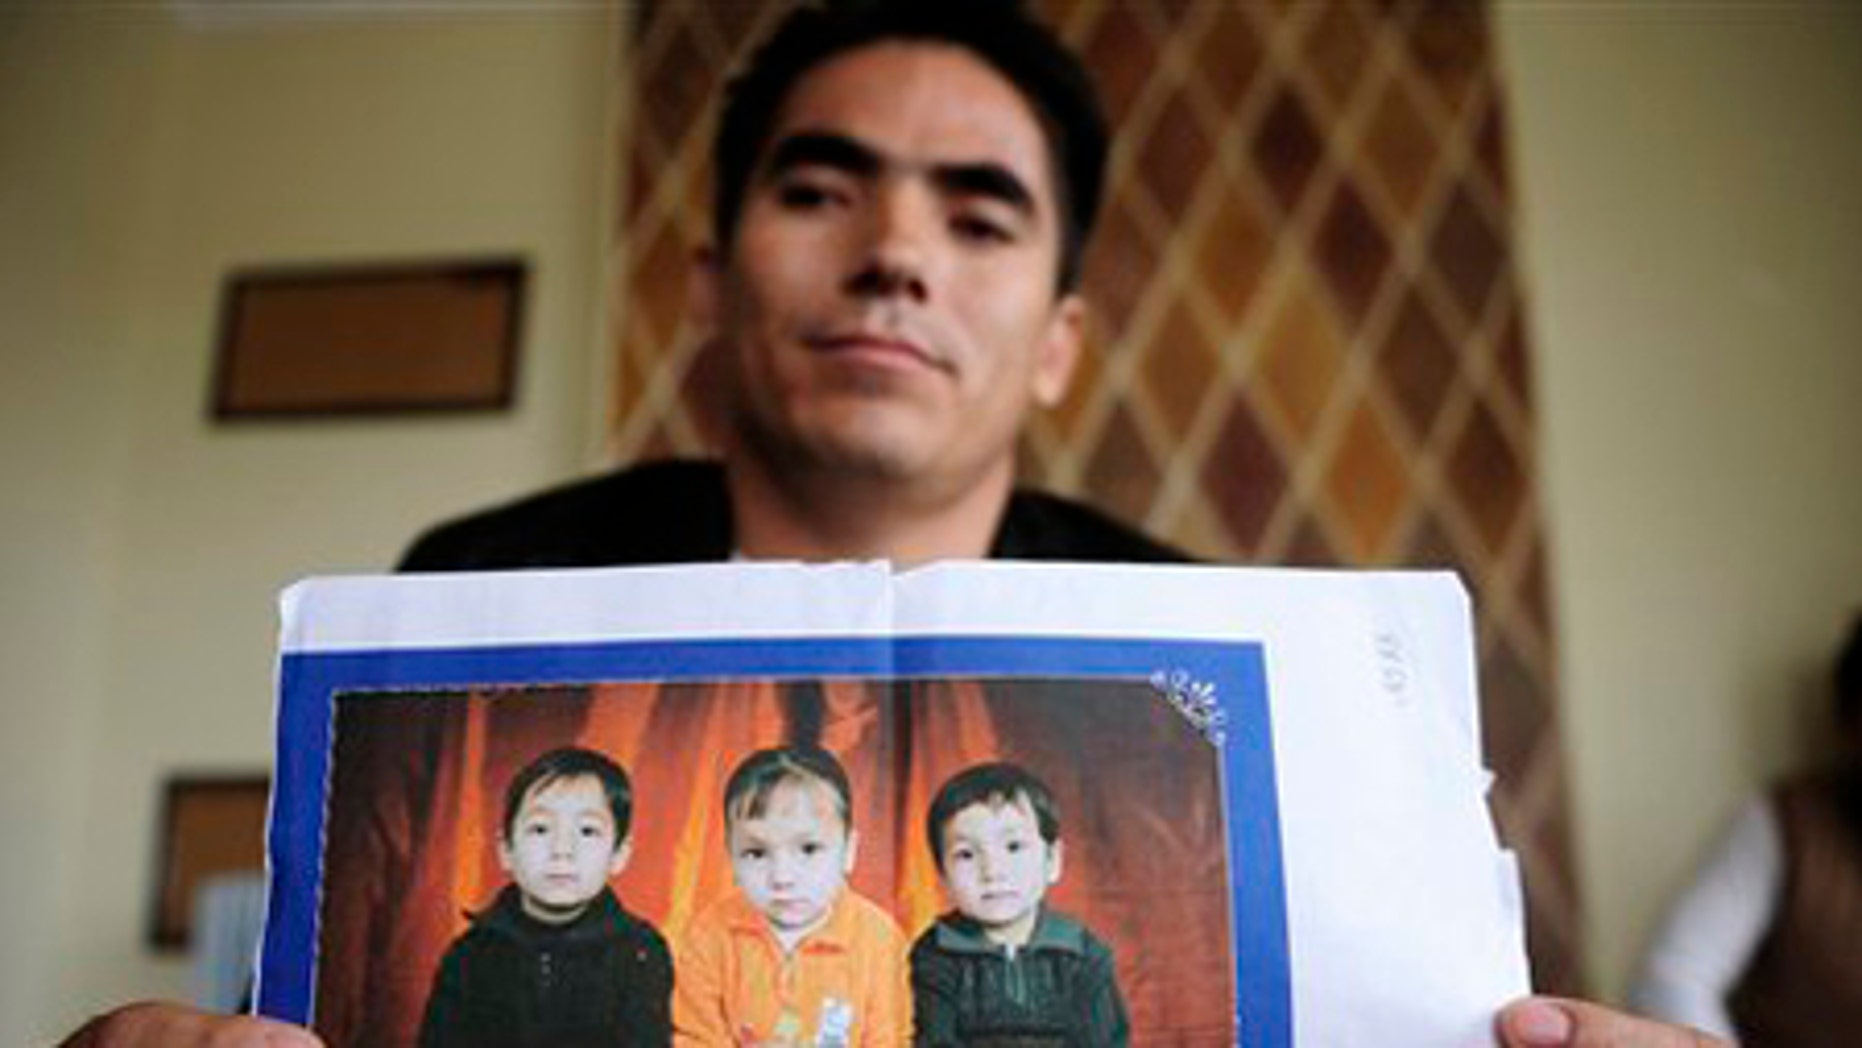 Ali Khosh Razaee holds pictures of his three young children at a house in an Adelaide, Australia, suburb.